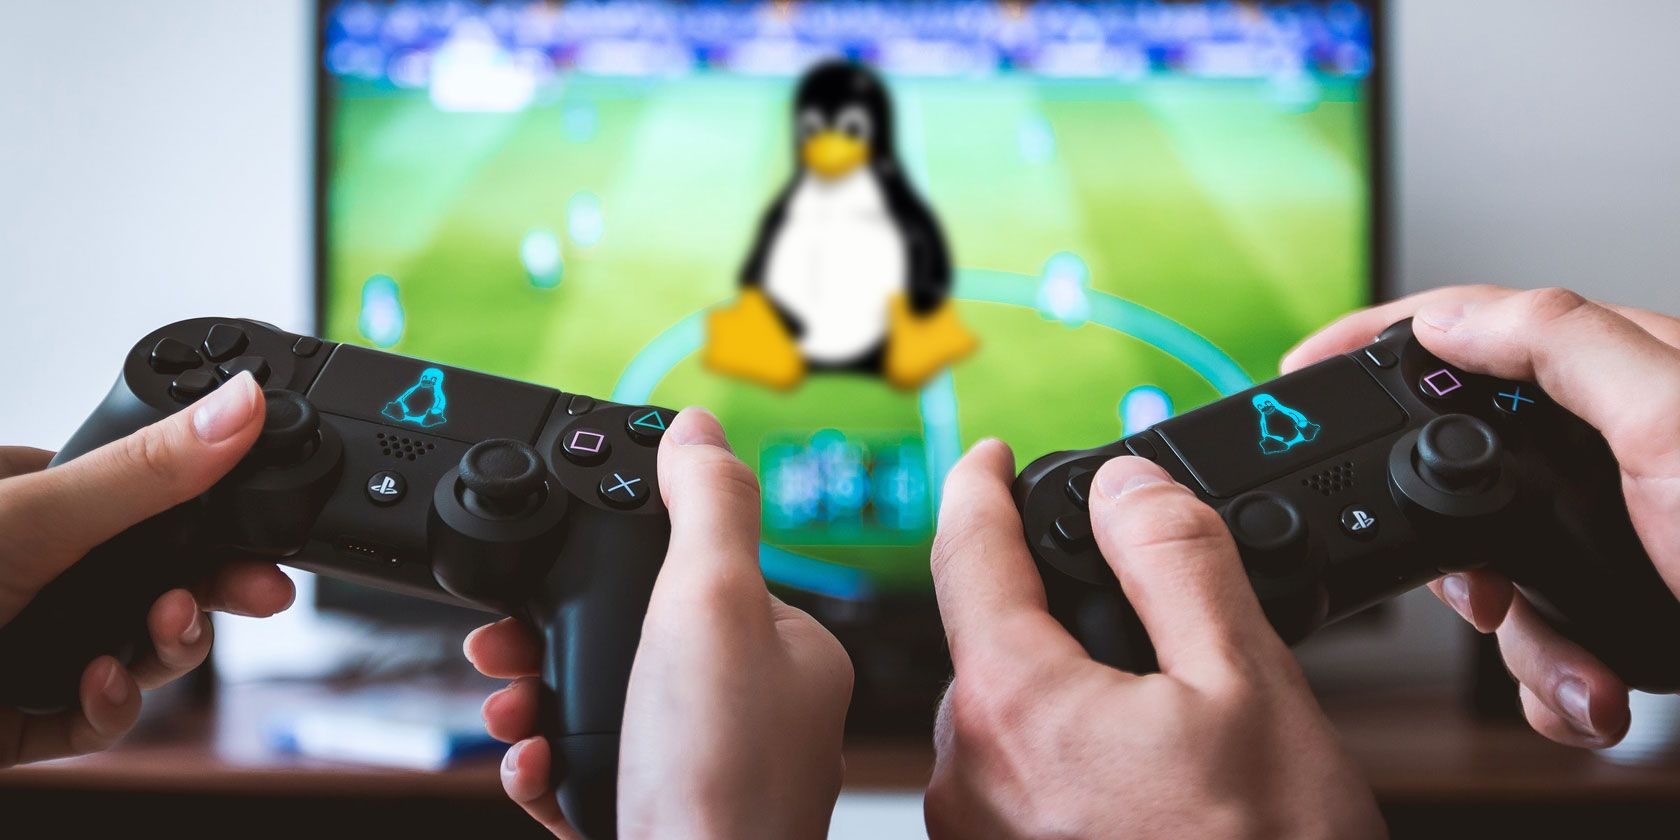 9 Best Linux Distros For Gaming